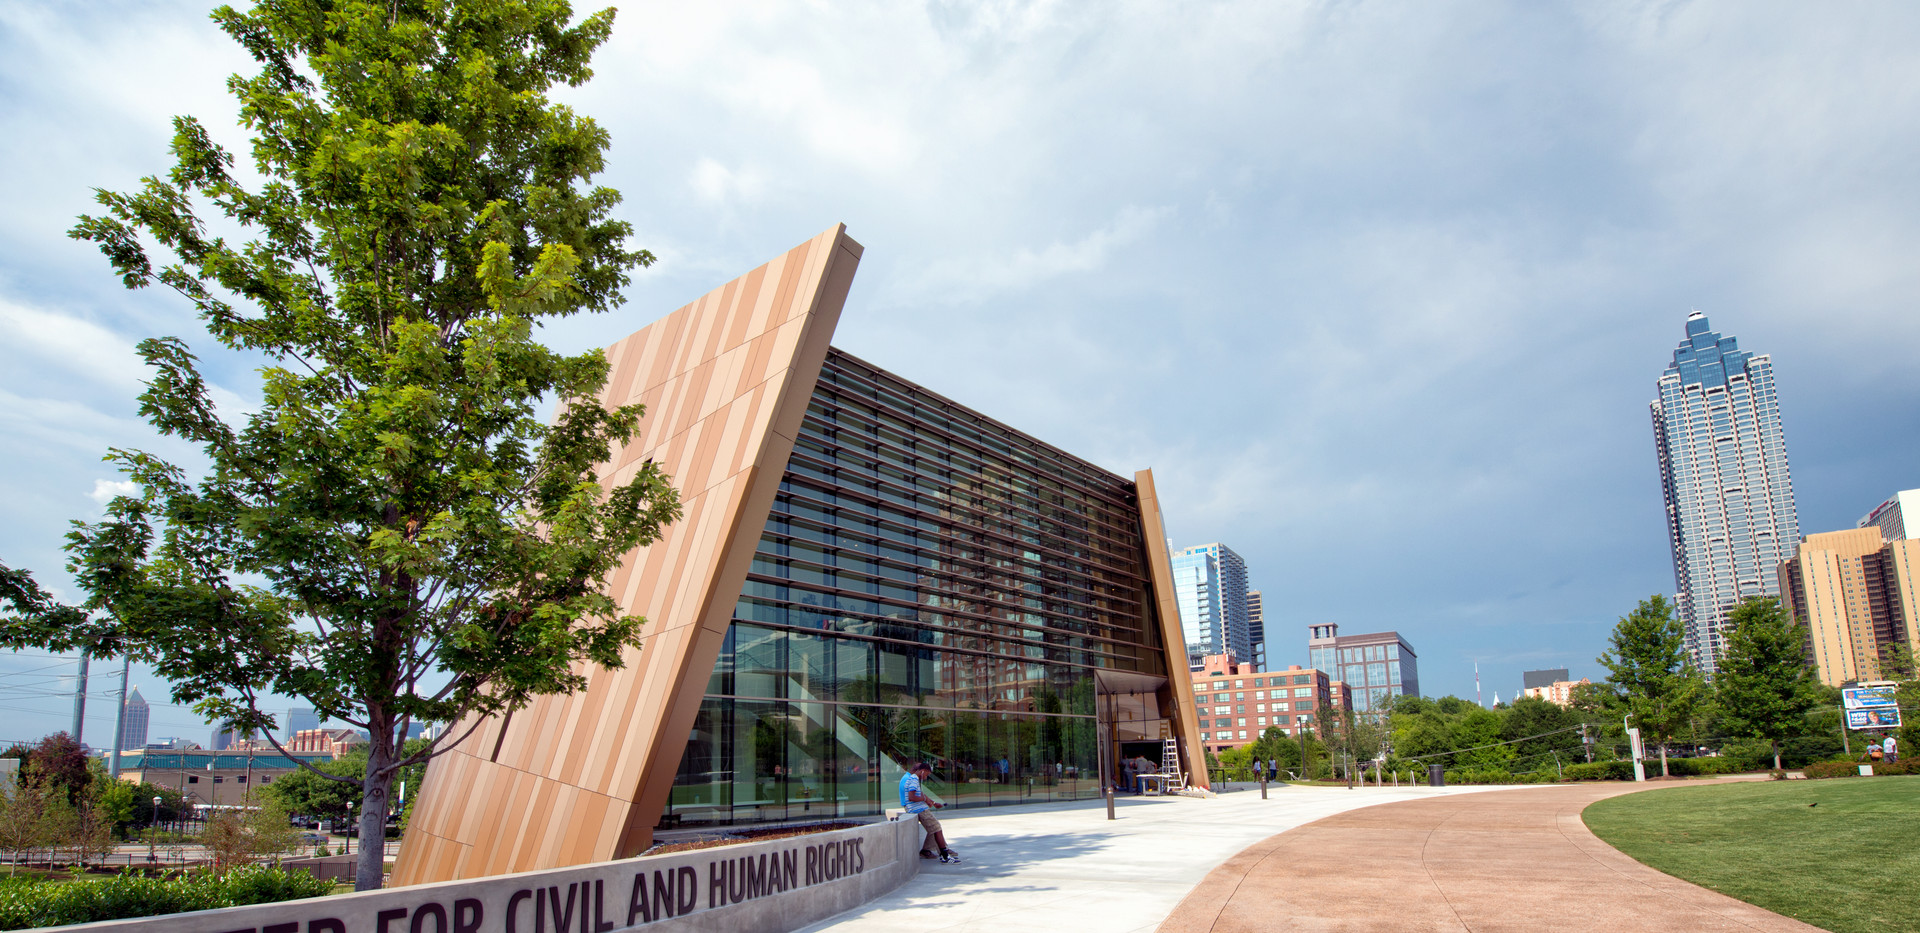 National Center for Civil & Human Rights